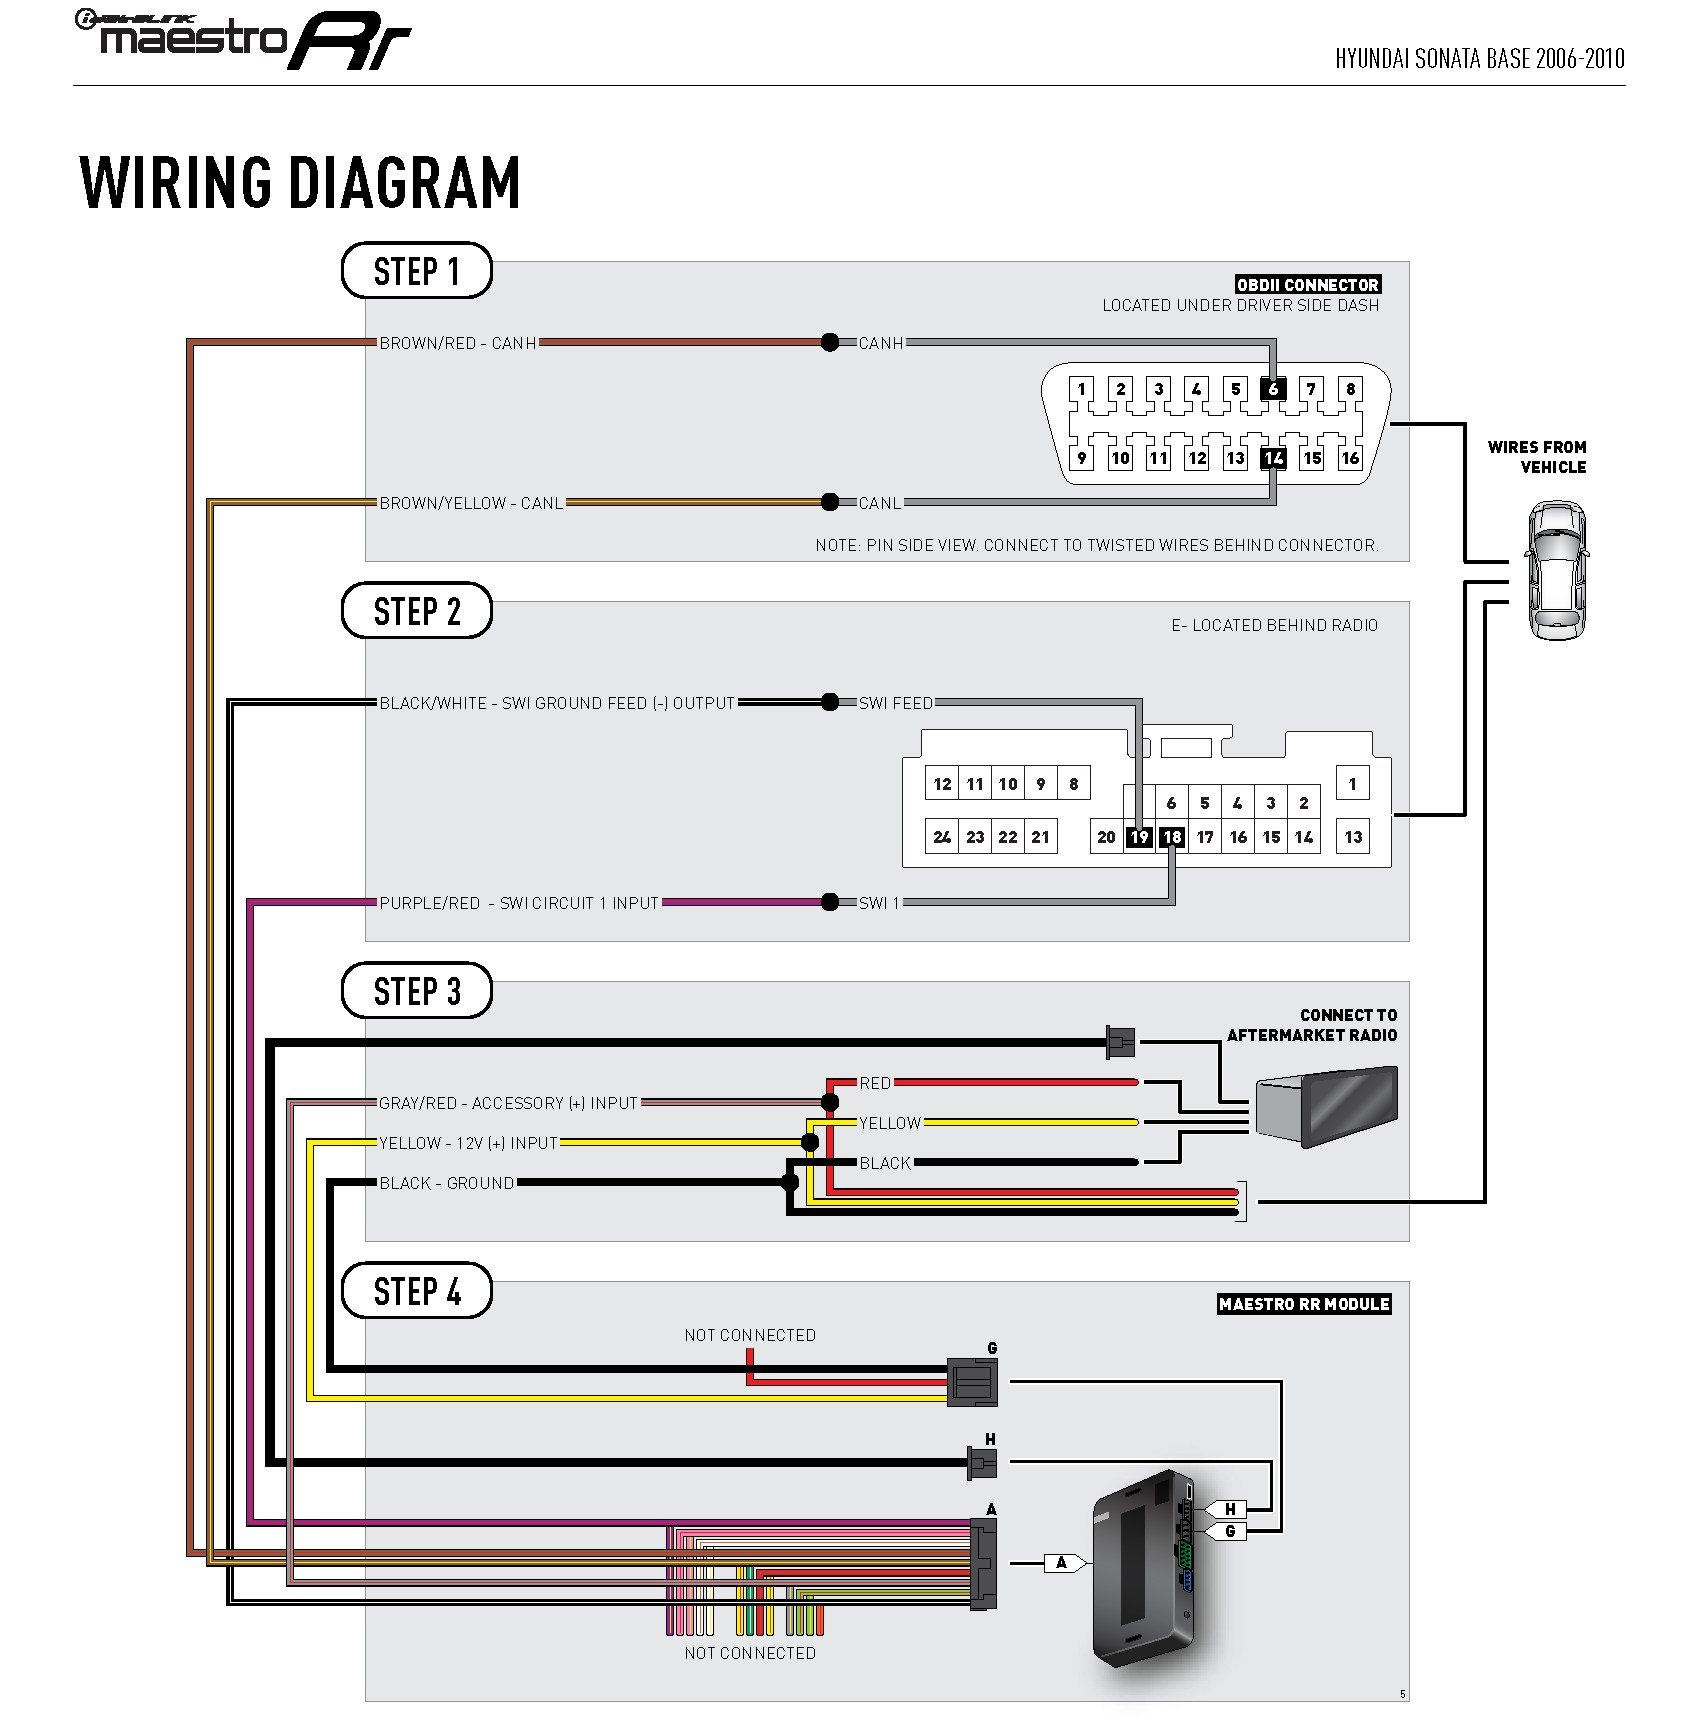 """gauge power wires on the RR yellow red and black """" I only connected the Yellow and Black on the """"G"""" connector Step 4 as per the diagram below"""